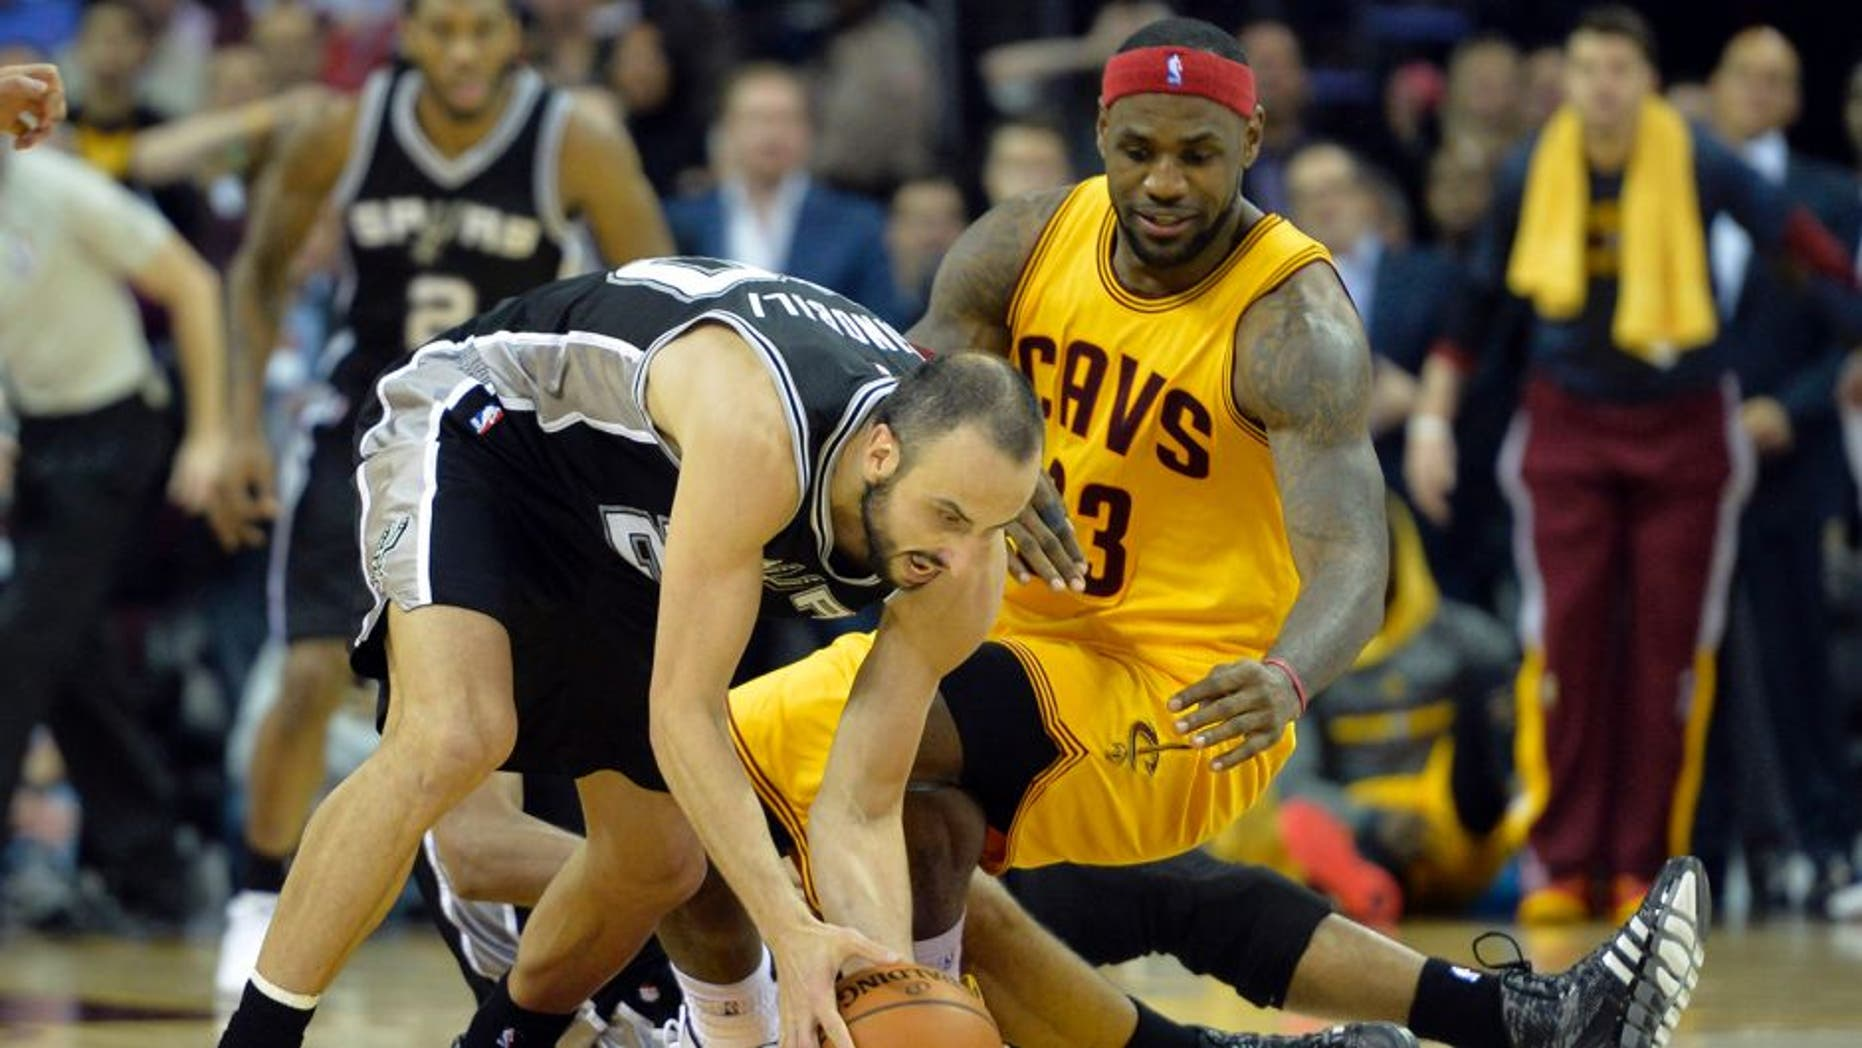 Nov 19, 2014; Cleveland, OH, USA; Cleveland Cavaliers forward LeBron James (23) watches after losing the ball to San Antonio Spurs guard Manu Ginobili (20) in the final seconds at Quicken Loans Arena. Mandatory Credit: David Richard-USA TODAY Sports